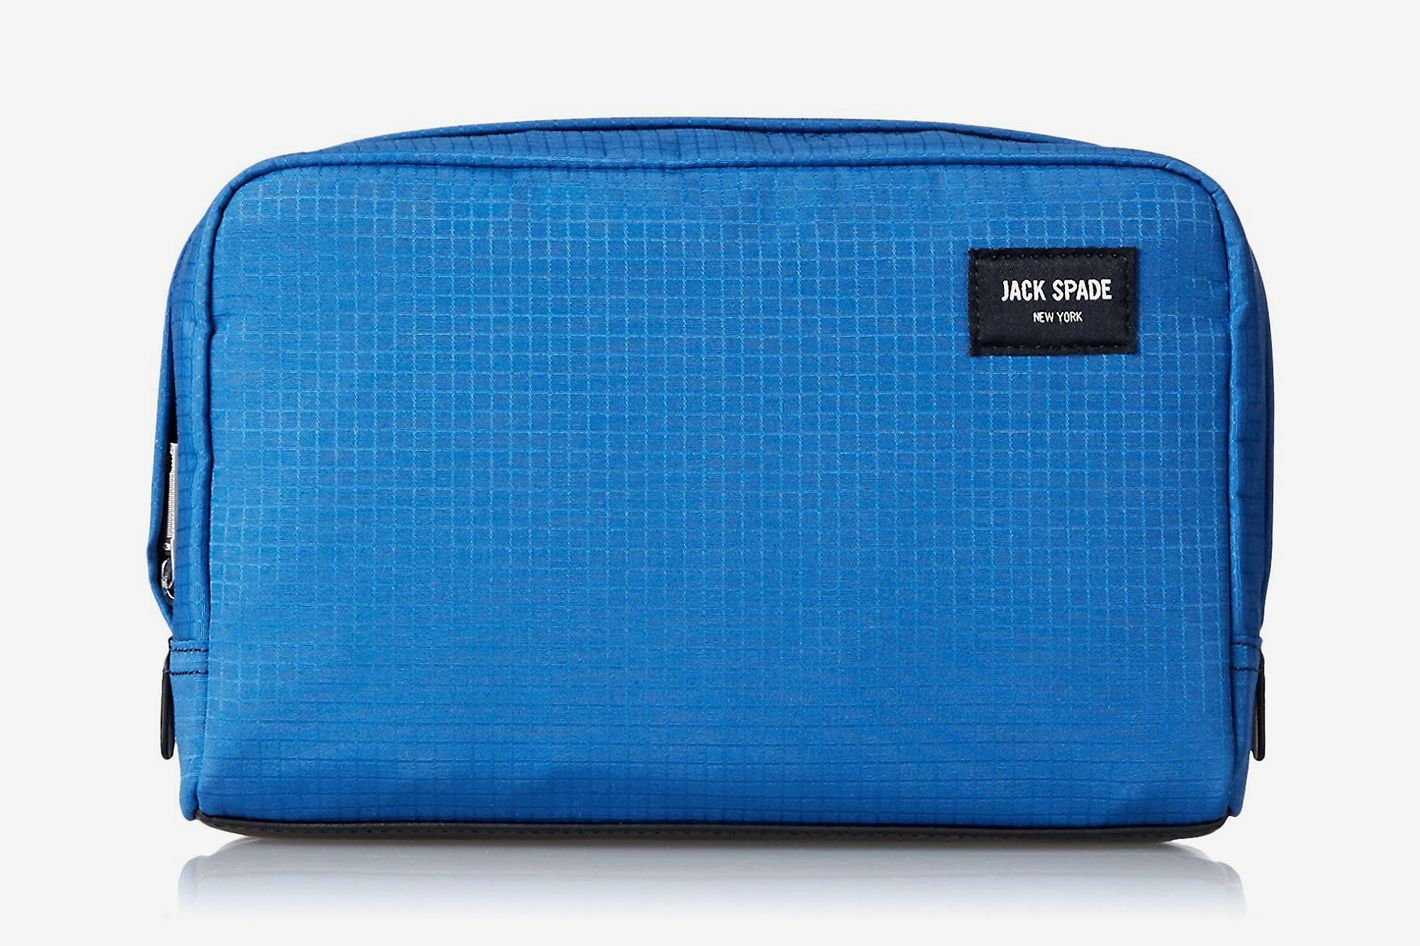 Jack Spade Men's Solid Ripstop Slim Toiletry Kit